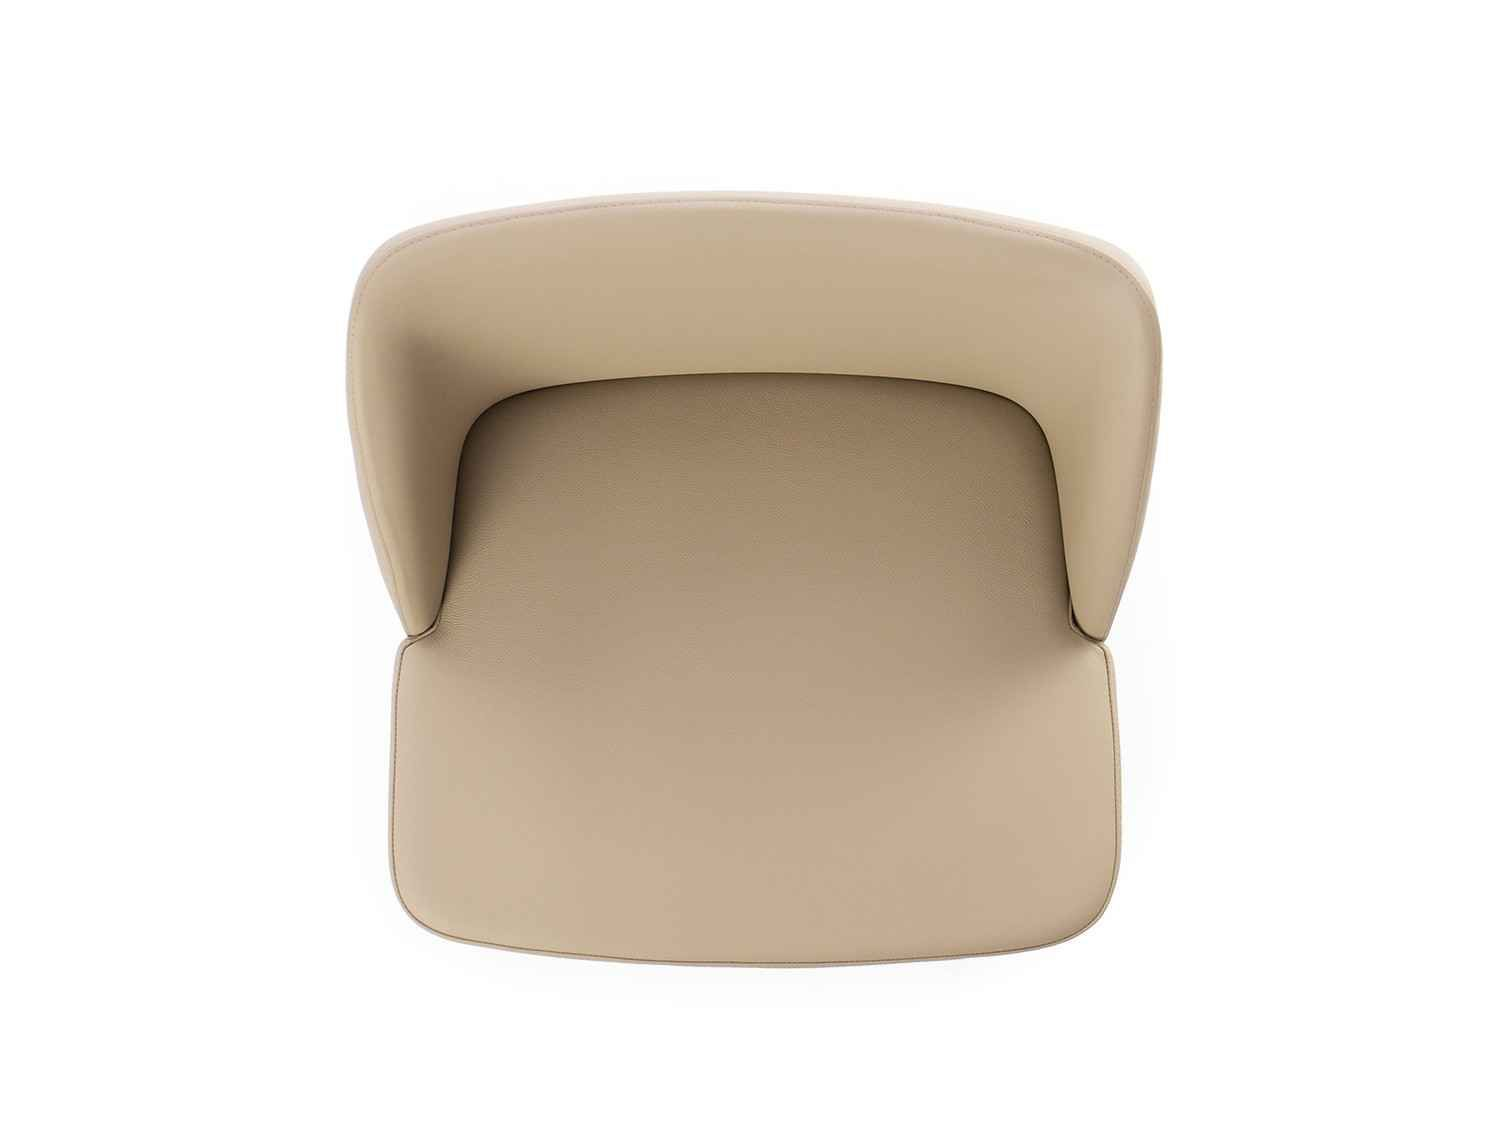 Image Result For Chair Top View Design Moveis E